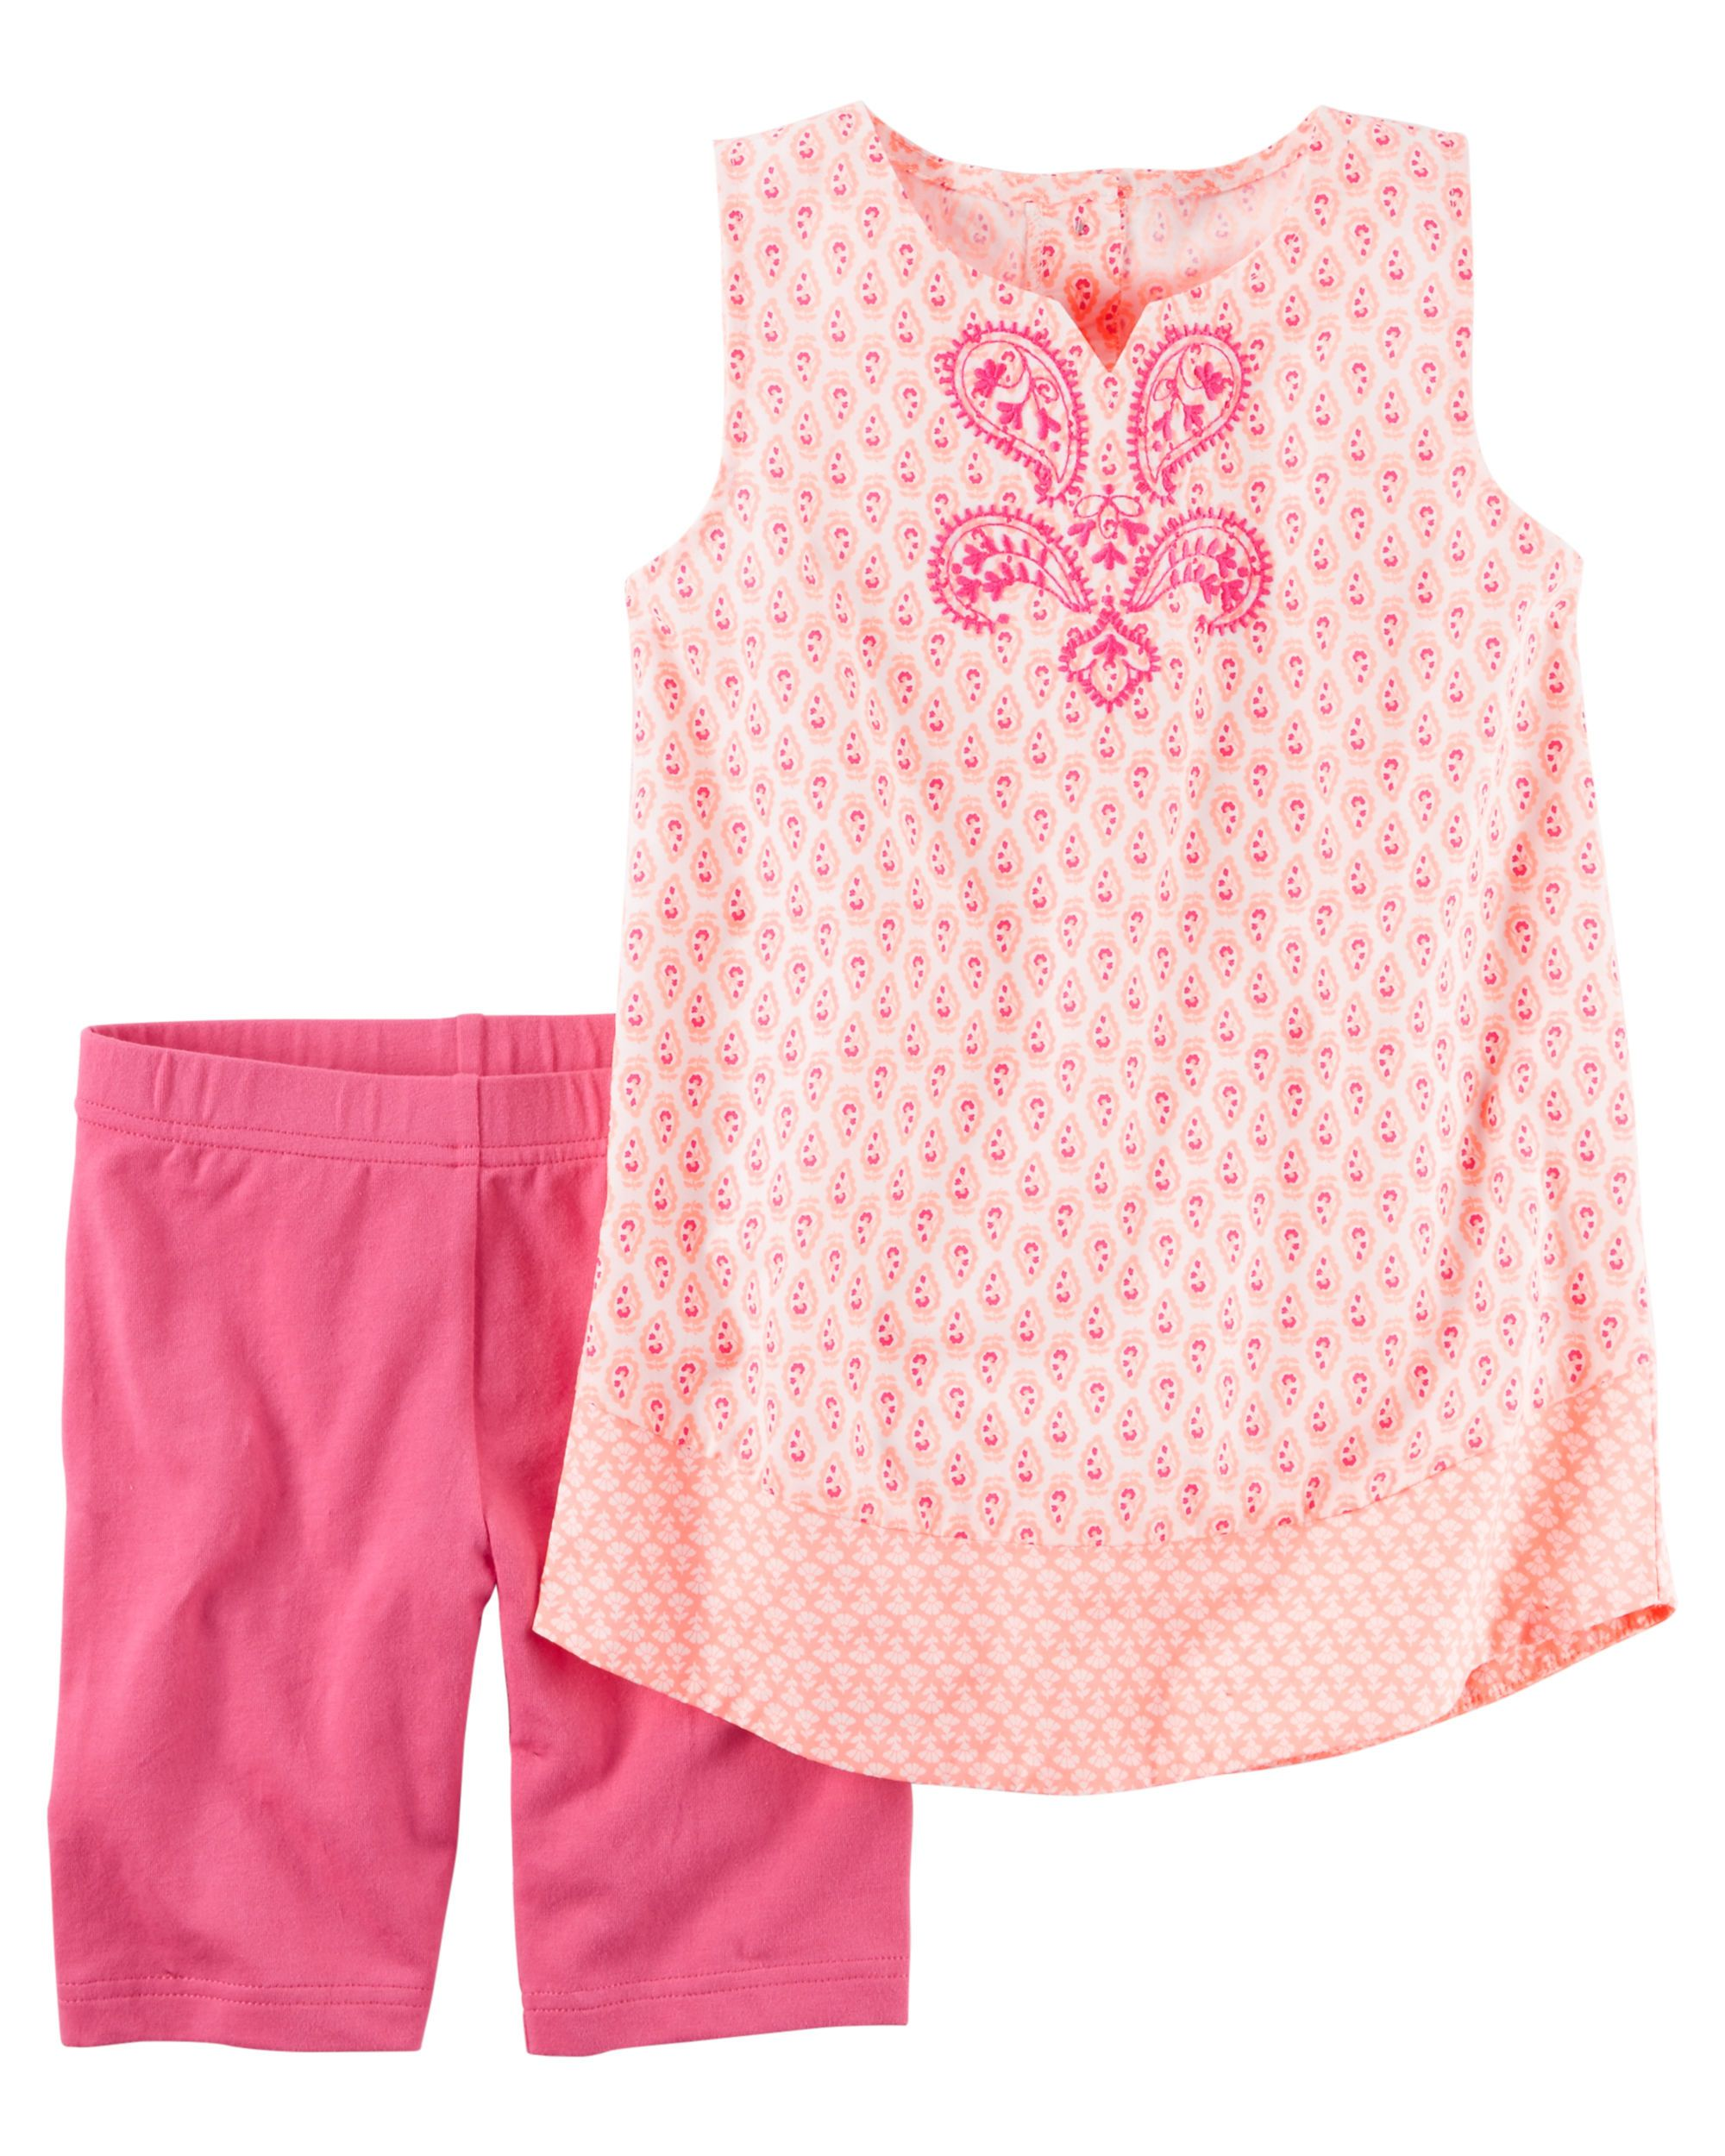 Kid Girl 2-Piece Printed Tank & Playground Short Set from Carters.com. Shop clothing & accessories from a trusted name in kids, toddlers, and baby clothes.